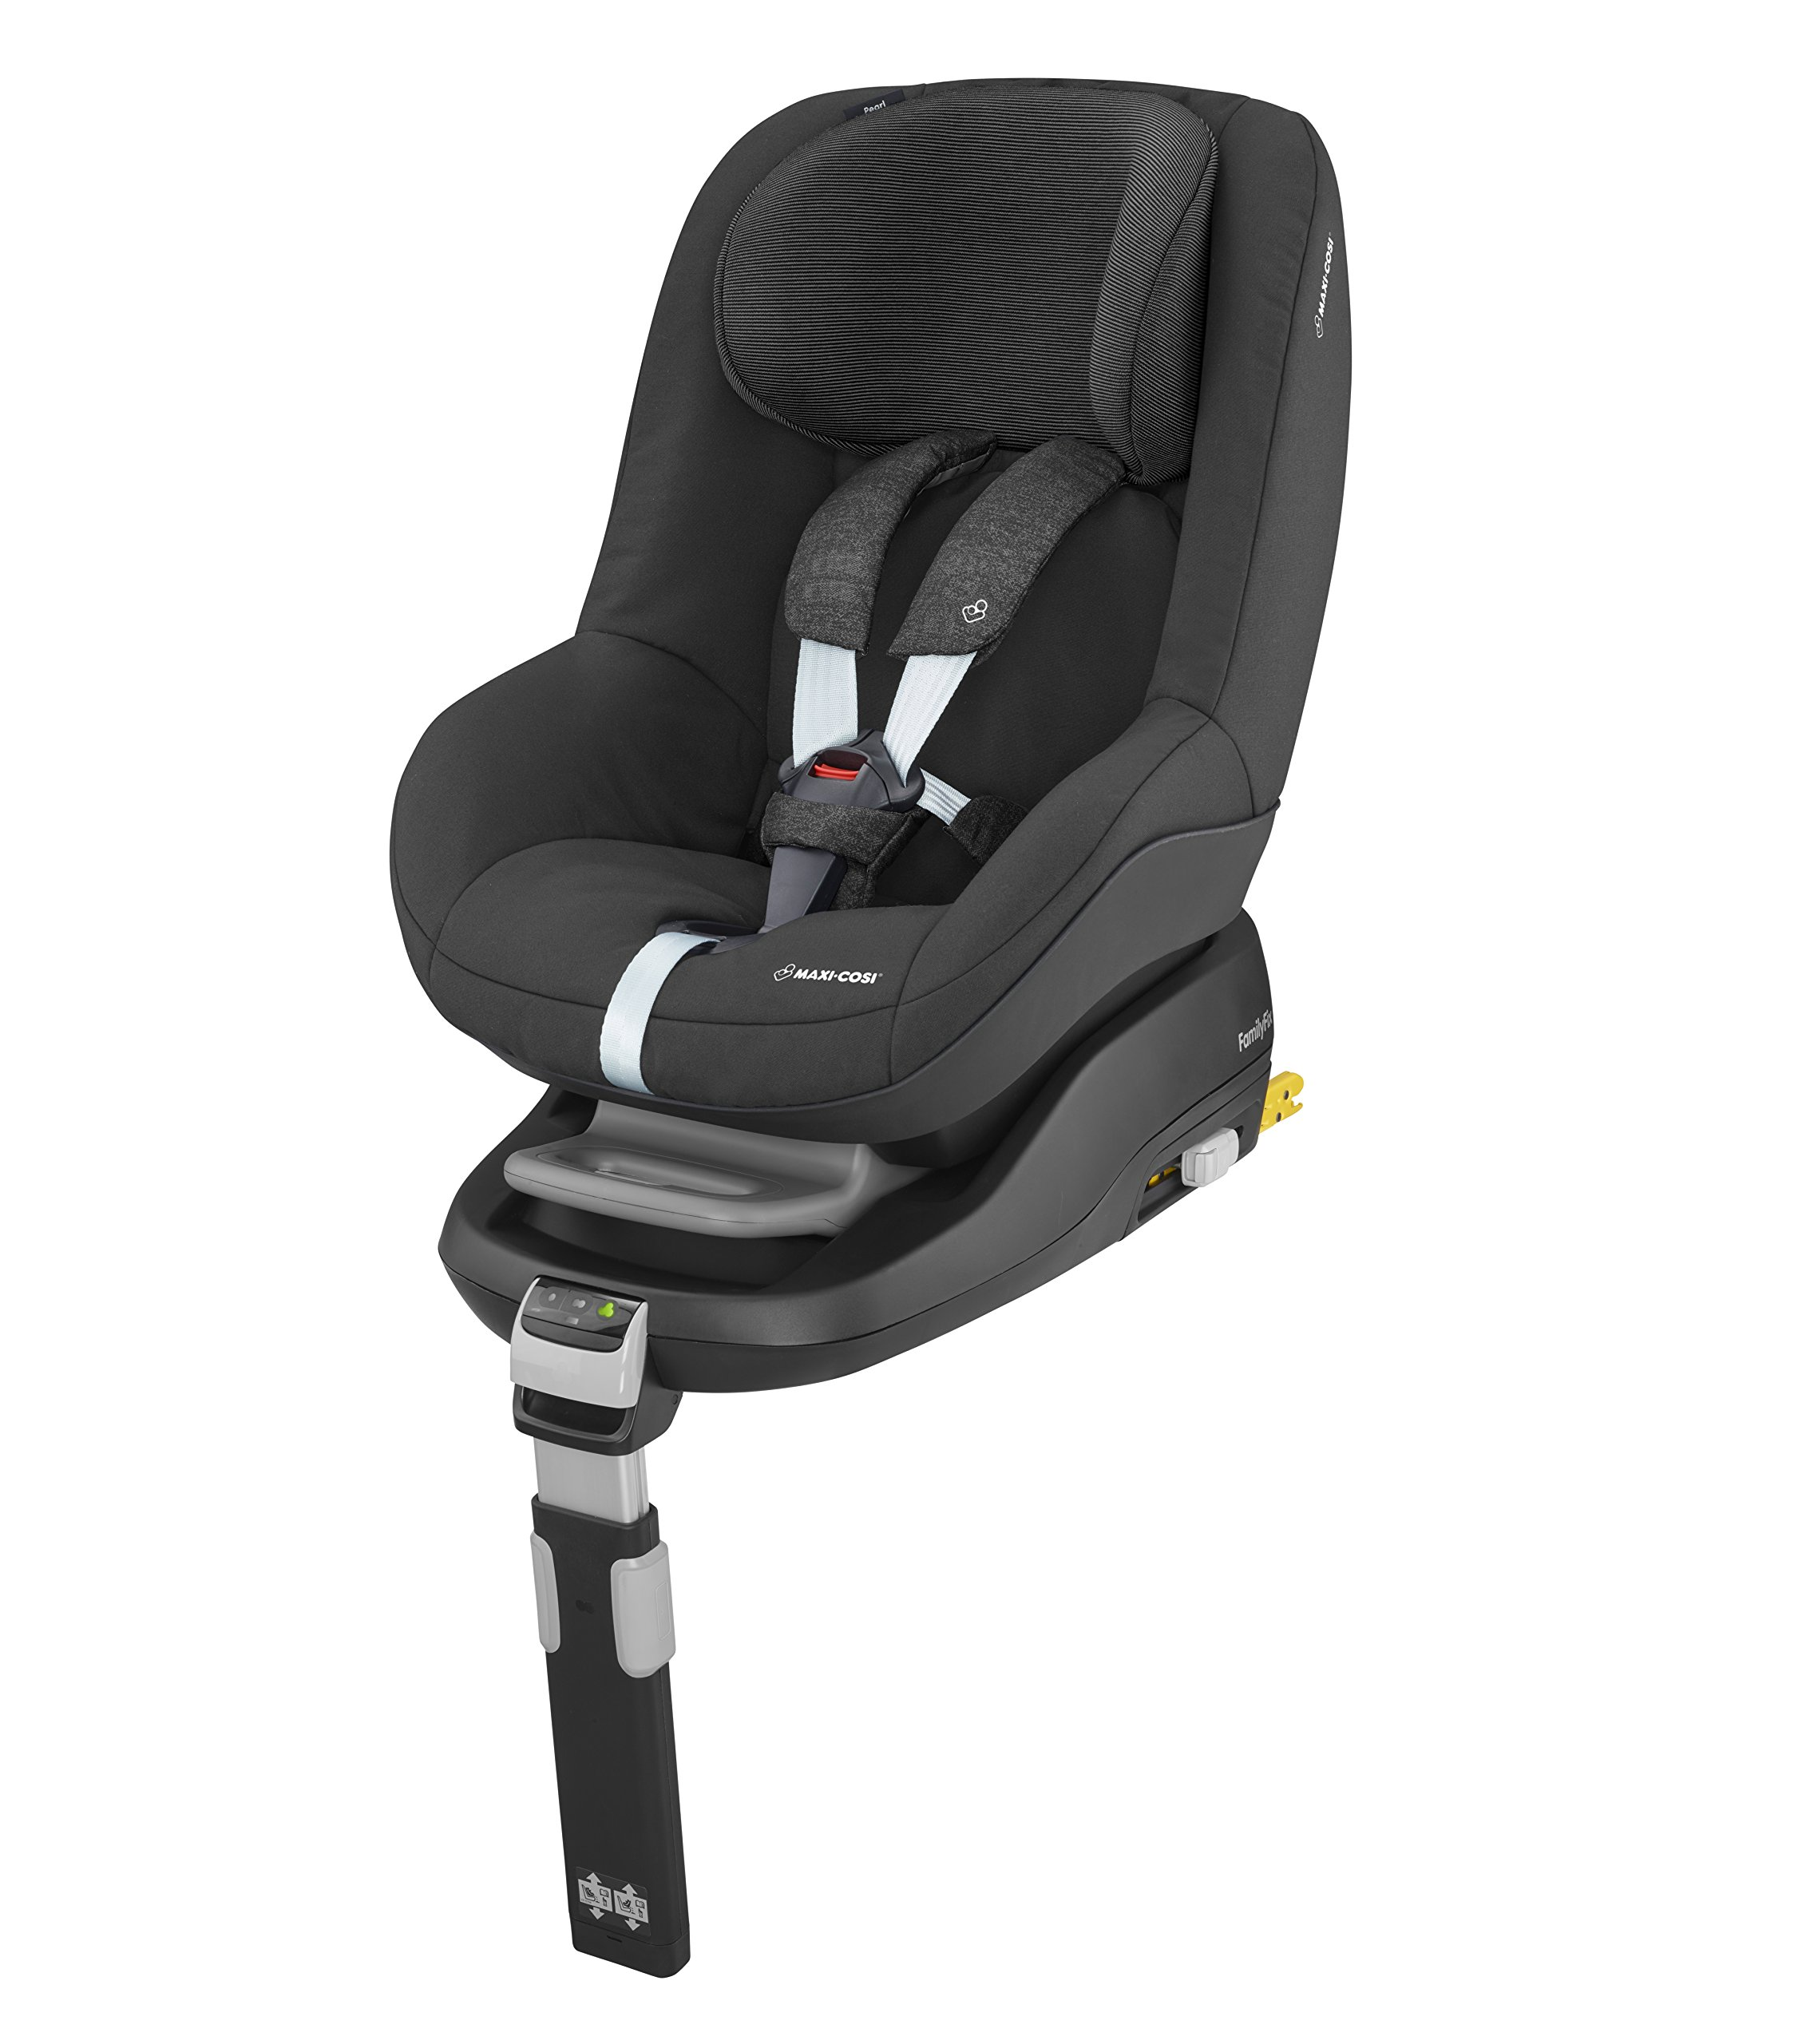 Maxi-Cosi Pearl Toddler Car Seat Group 1, ISOFIX Car Seat, Compact, , 9 Months - 4 Years, 9-18 kg, Nomad Black Maxi-Cosi Interactive visual and audible feedback when the pearl is correctly installed with the maxi-cosi family fix base in the car Spring-loaded, stay open harness to make buckling up your toddler easier as the harness stays out of the way Simultaneous harness & headrest adjustment can be operated with one-hand 4